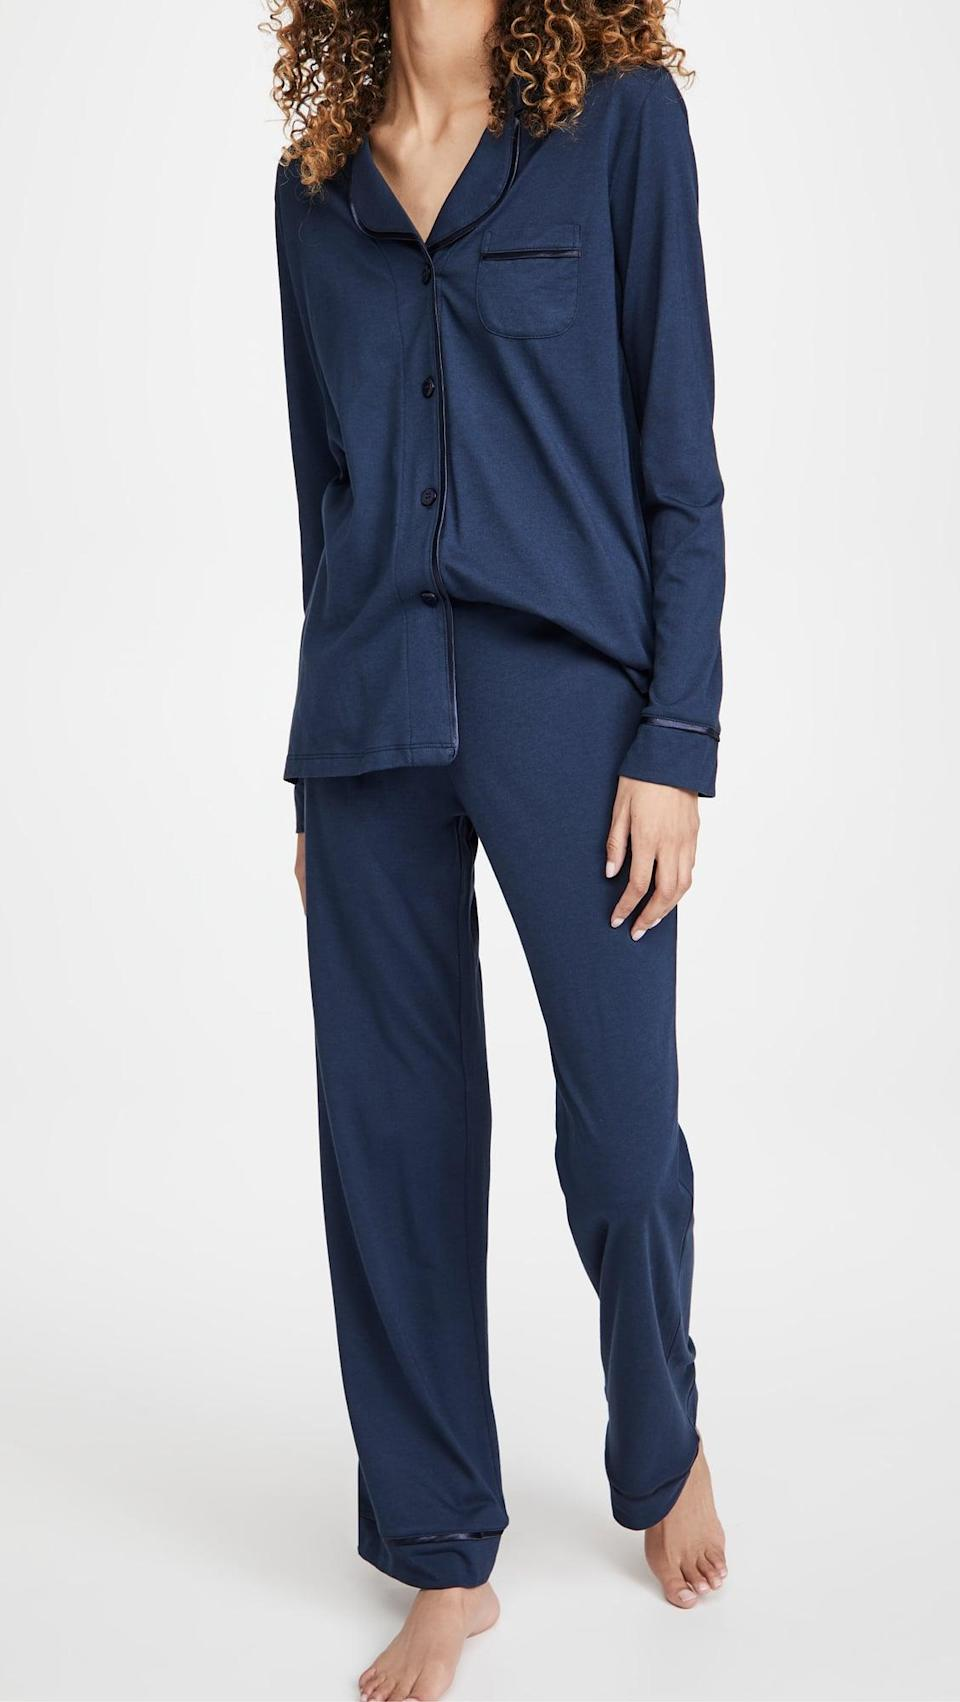 <p>This <span>Cosabella Bella Pima Long Sleeve Top &amp; Pant PJ Set</span> ($133) is so soft. It comes in seven colors, and we love the dark blue.</p>